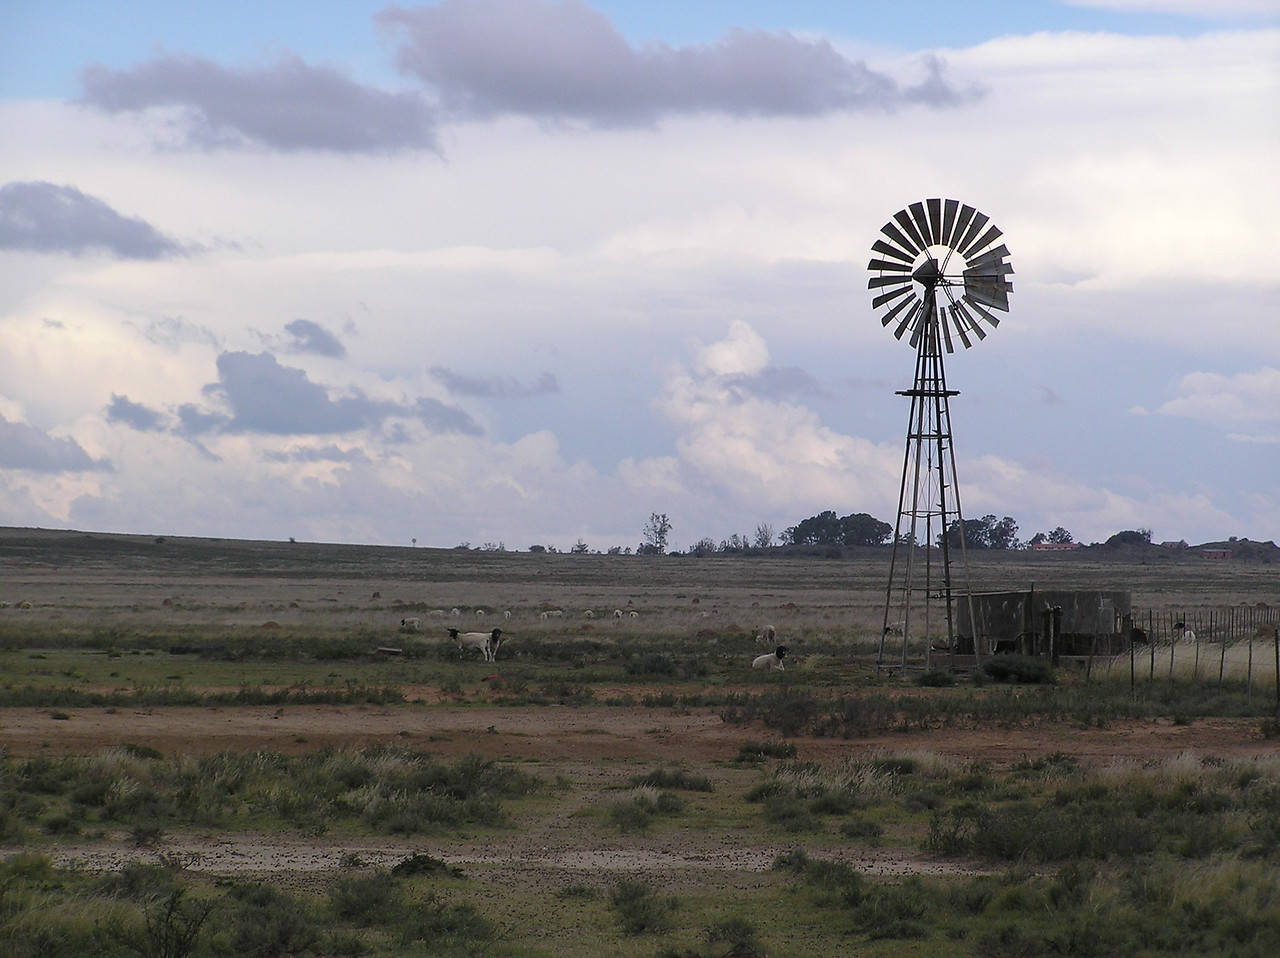 Sheep farm in the Karoo<br /> <br /> Beyond the Hex River Valley, the mountains began to flatten out, the terrain became noticeably drier and rockier, and vegetation grew scarcer. Citrus groves gave way to sheep farms and the occasional cattle farm.